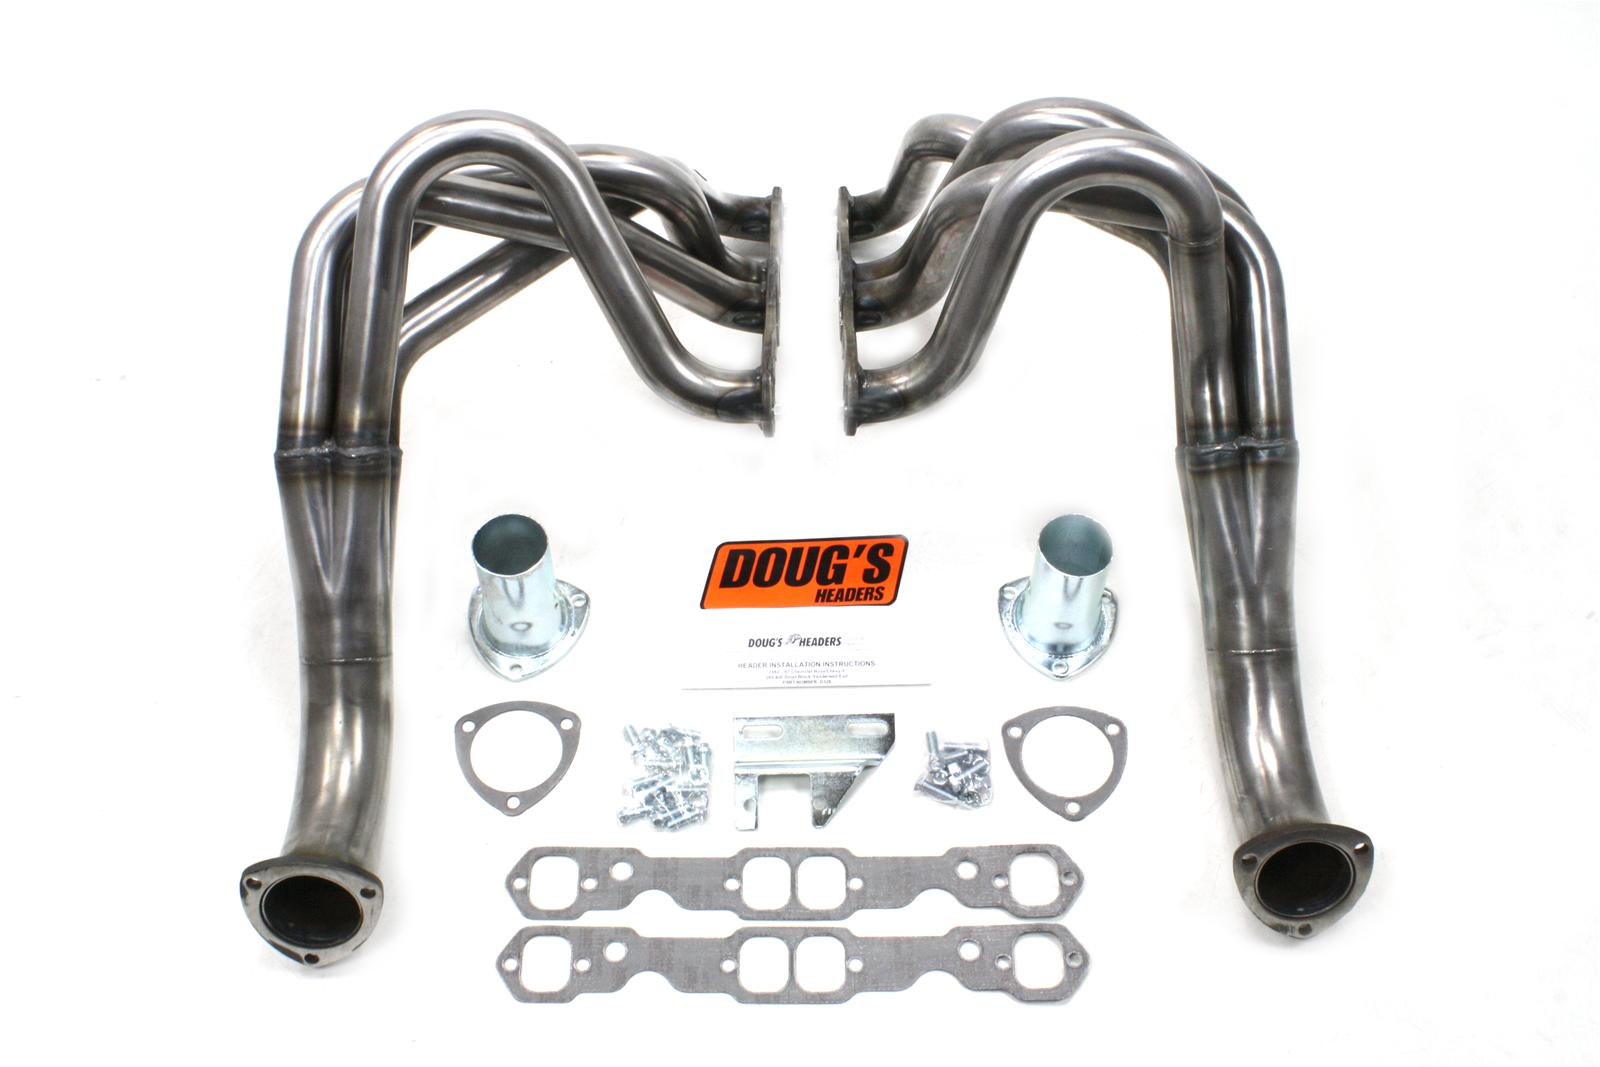 Dougs Headers At Summit Racing